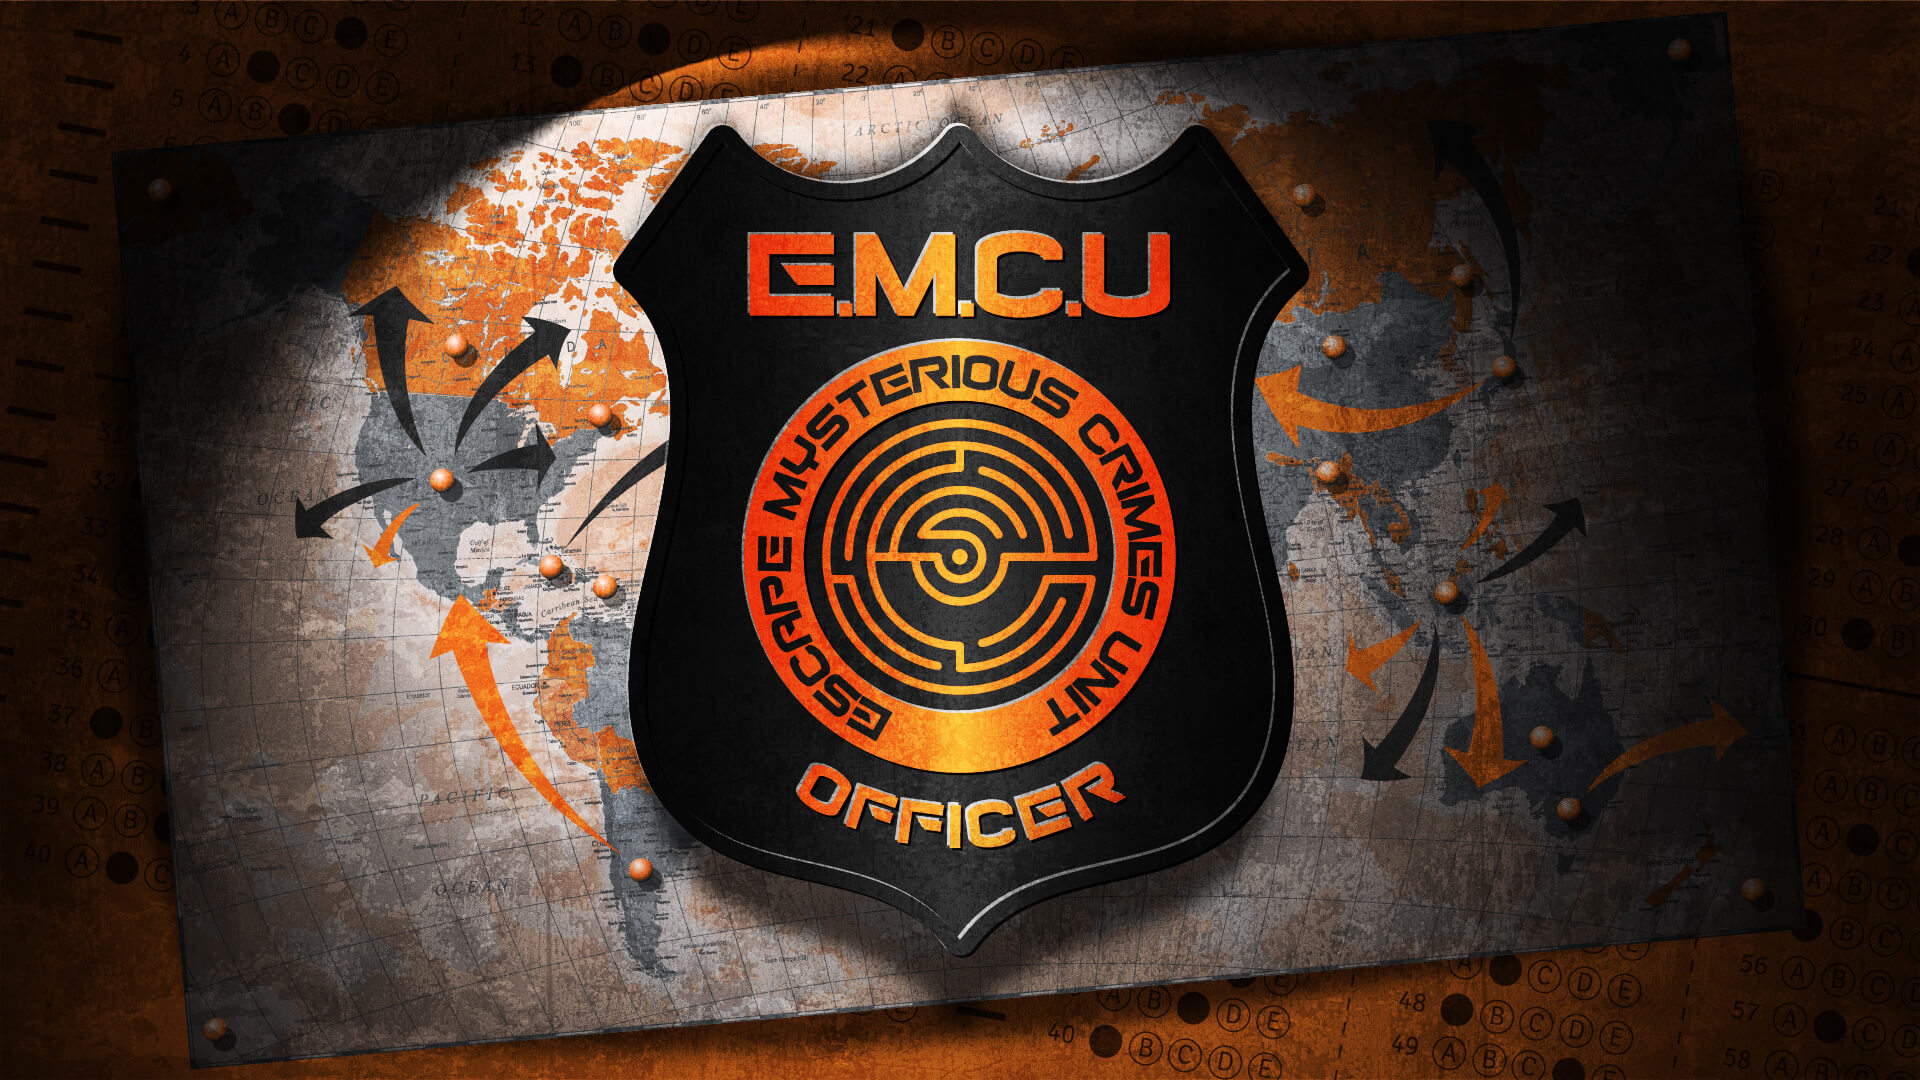 E.M.C.U. - The Escape Mysterious Crimes Unit are recruiting and they need you. Having worked through your training you now only have the test to complete. A simple sit down multiple choice test should be easy. Surely that isn't all that is involved!